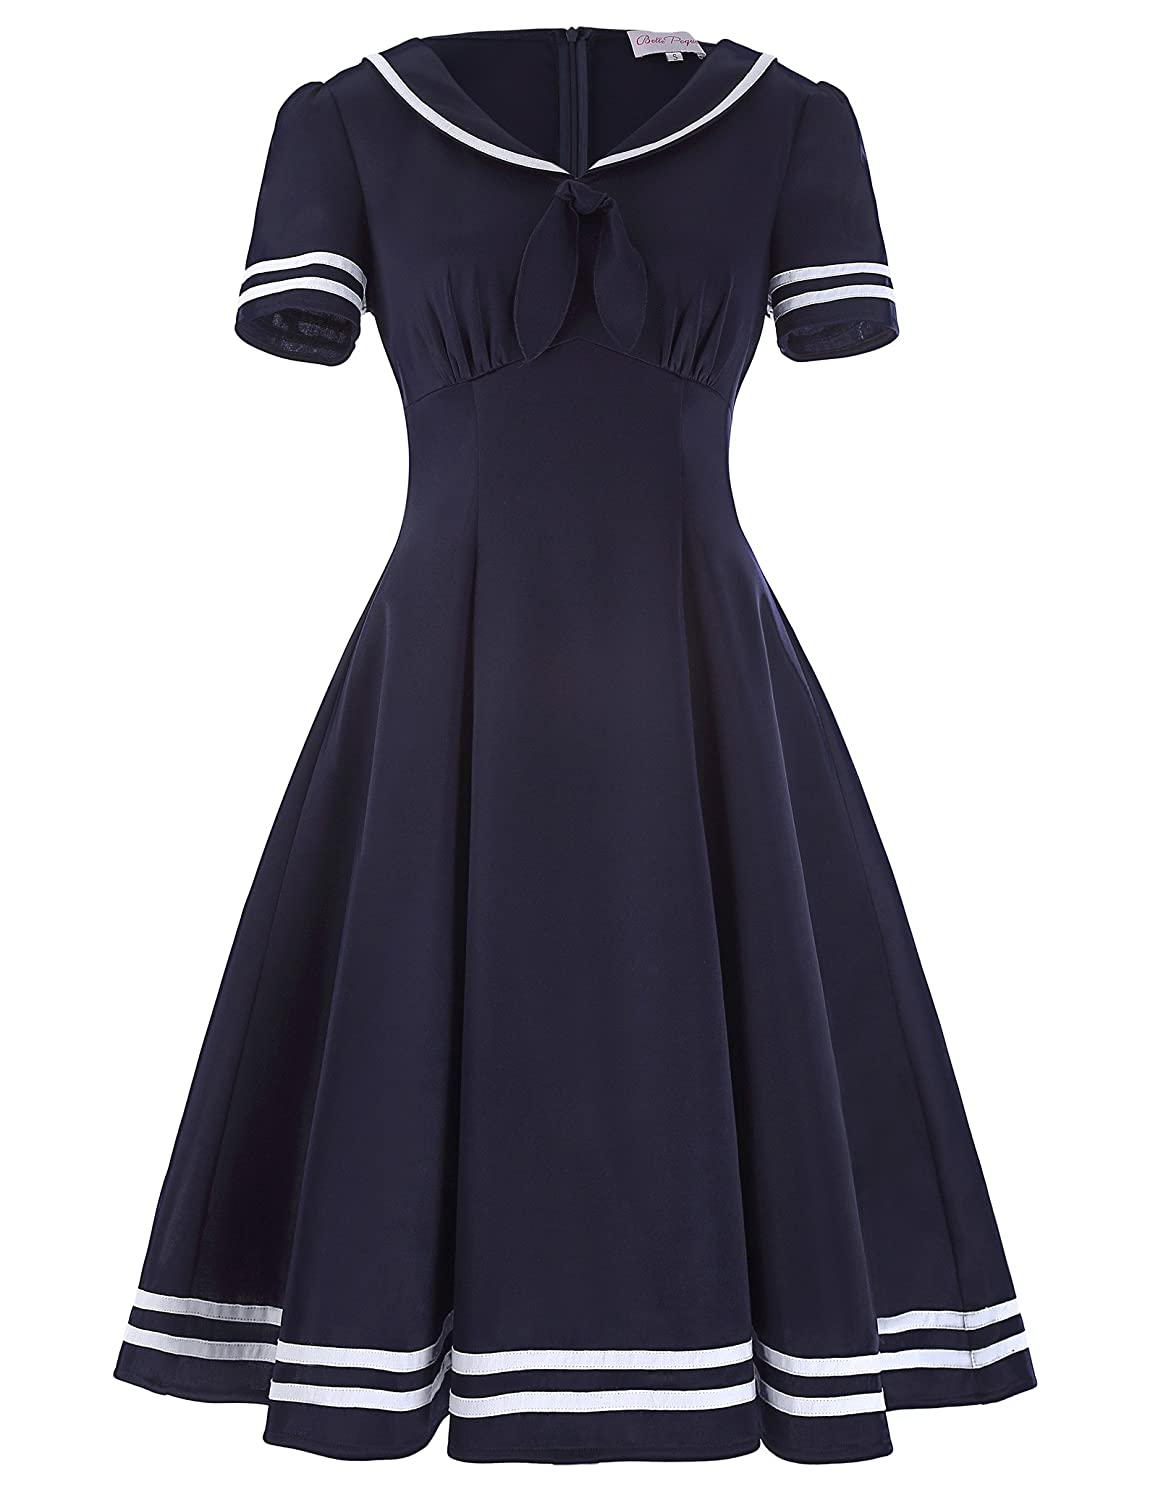 1940s Costumes- WW2, Nurse, Pinup, Rosie the Riveter Belle Poque Womens Retro Sailor Dress Short Sleeve Cocktail Party Swing Dress $29.99 AT vintagedancer.com